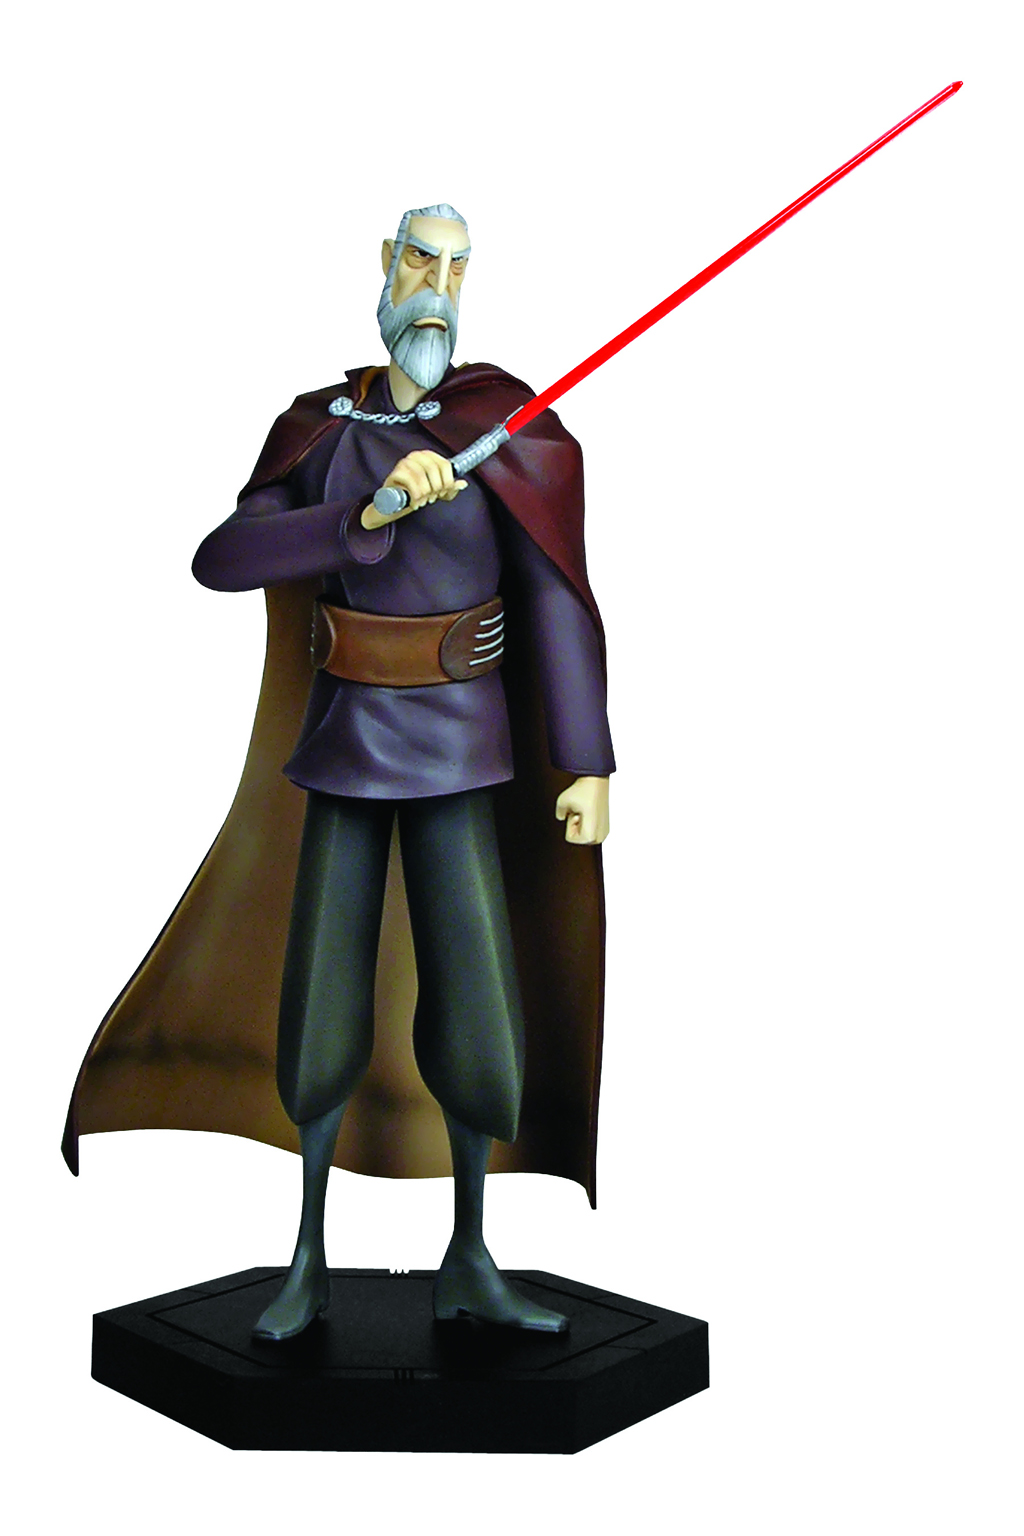 Count Dooku / Darth Tyranus (as of The Clone Wars)